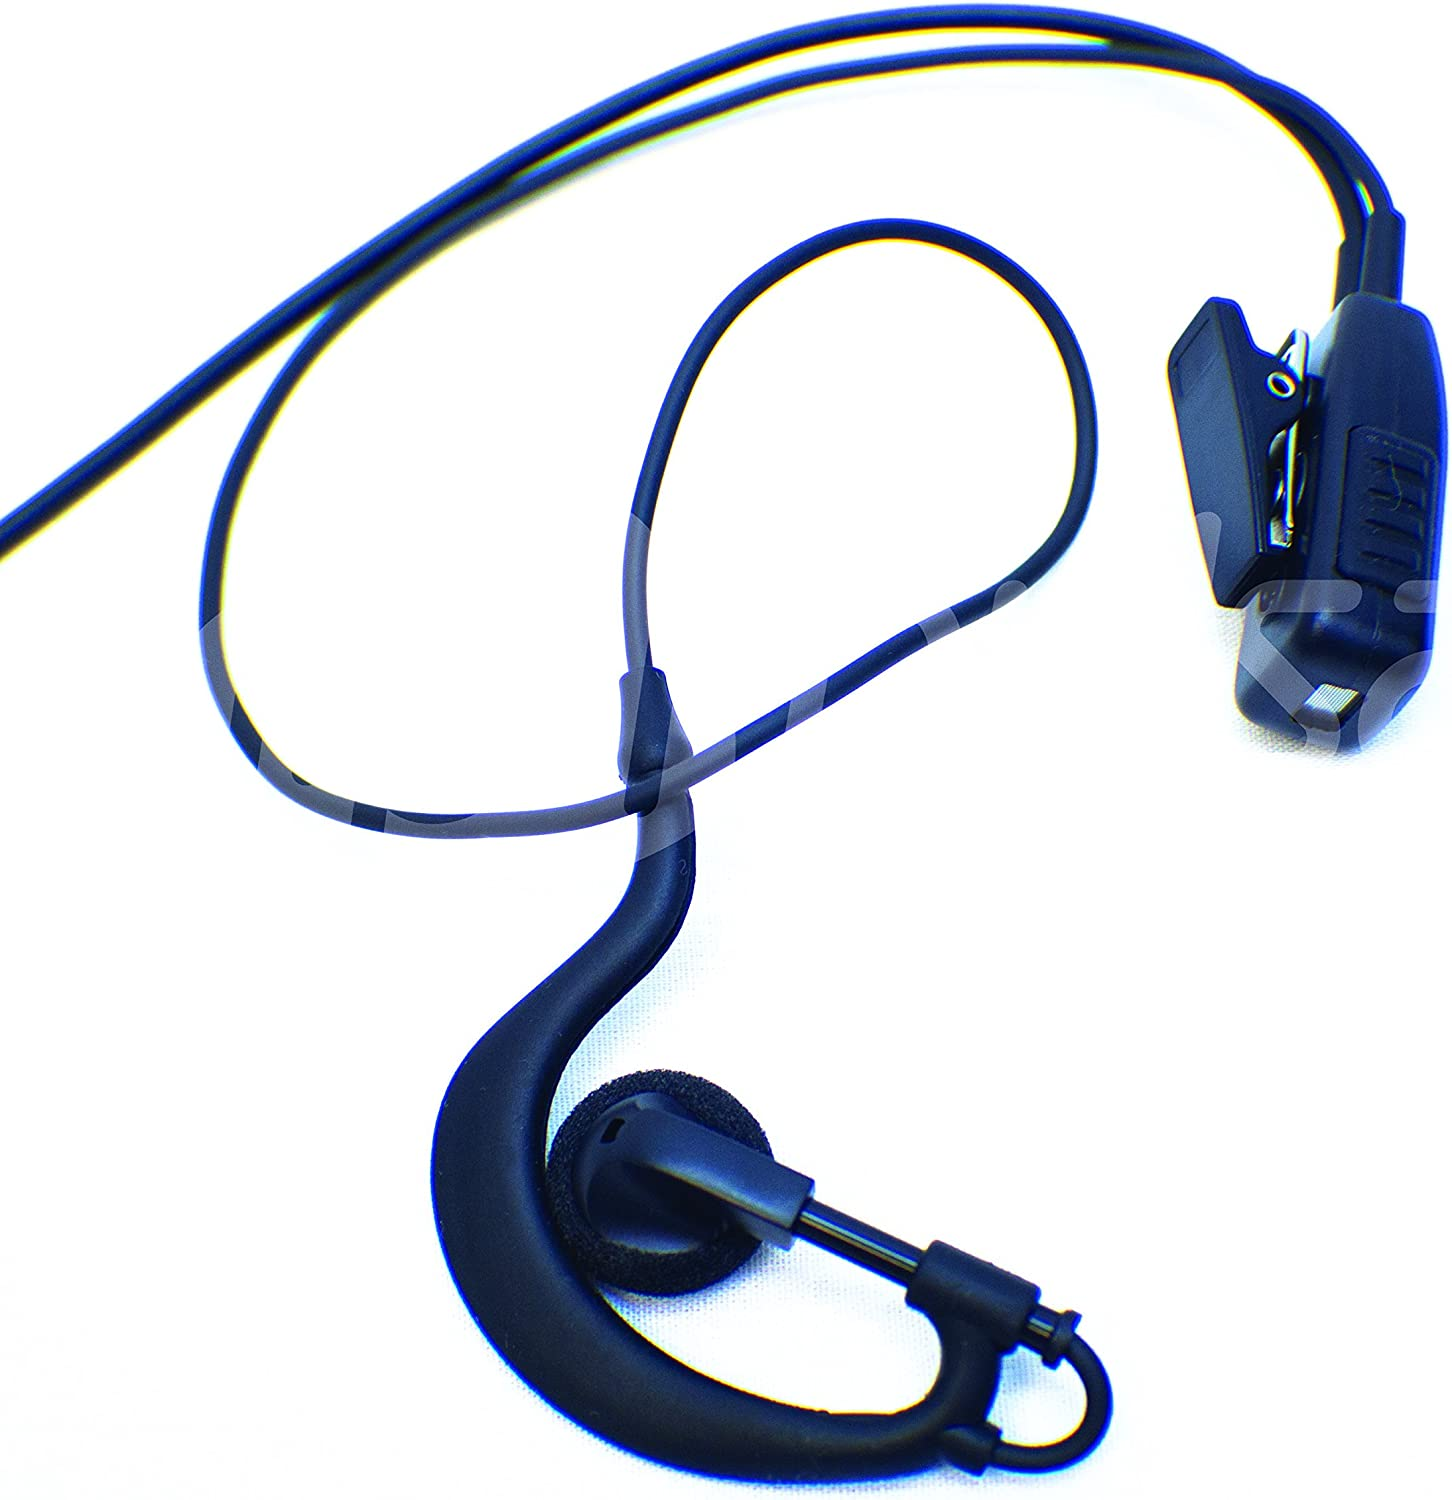 EarHook Surveillance Mic Kit for Vertex Standard VX-231 VX-261 VX-351 VX-450 and EVX Digital Series EJ30 Commercial Series